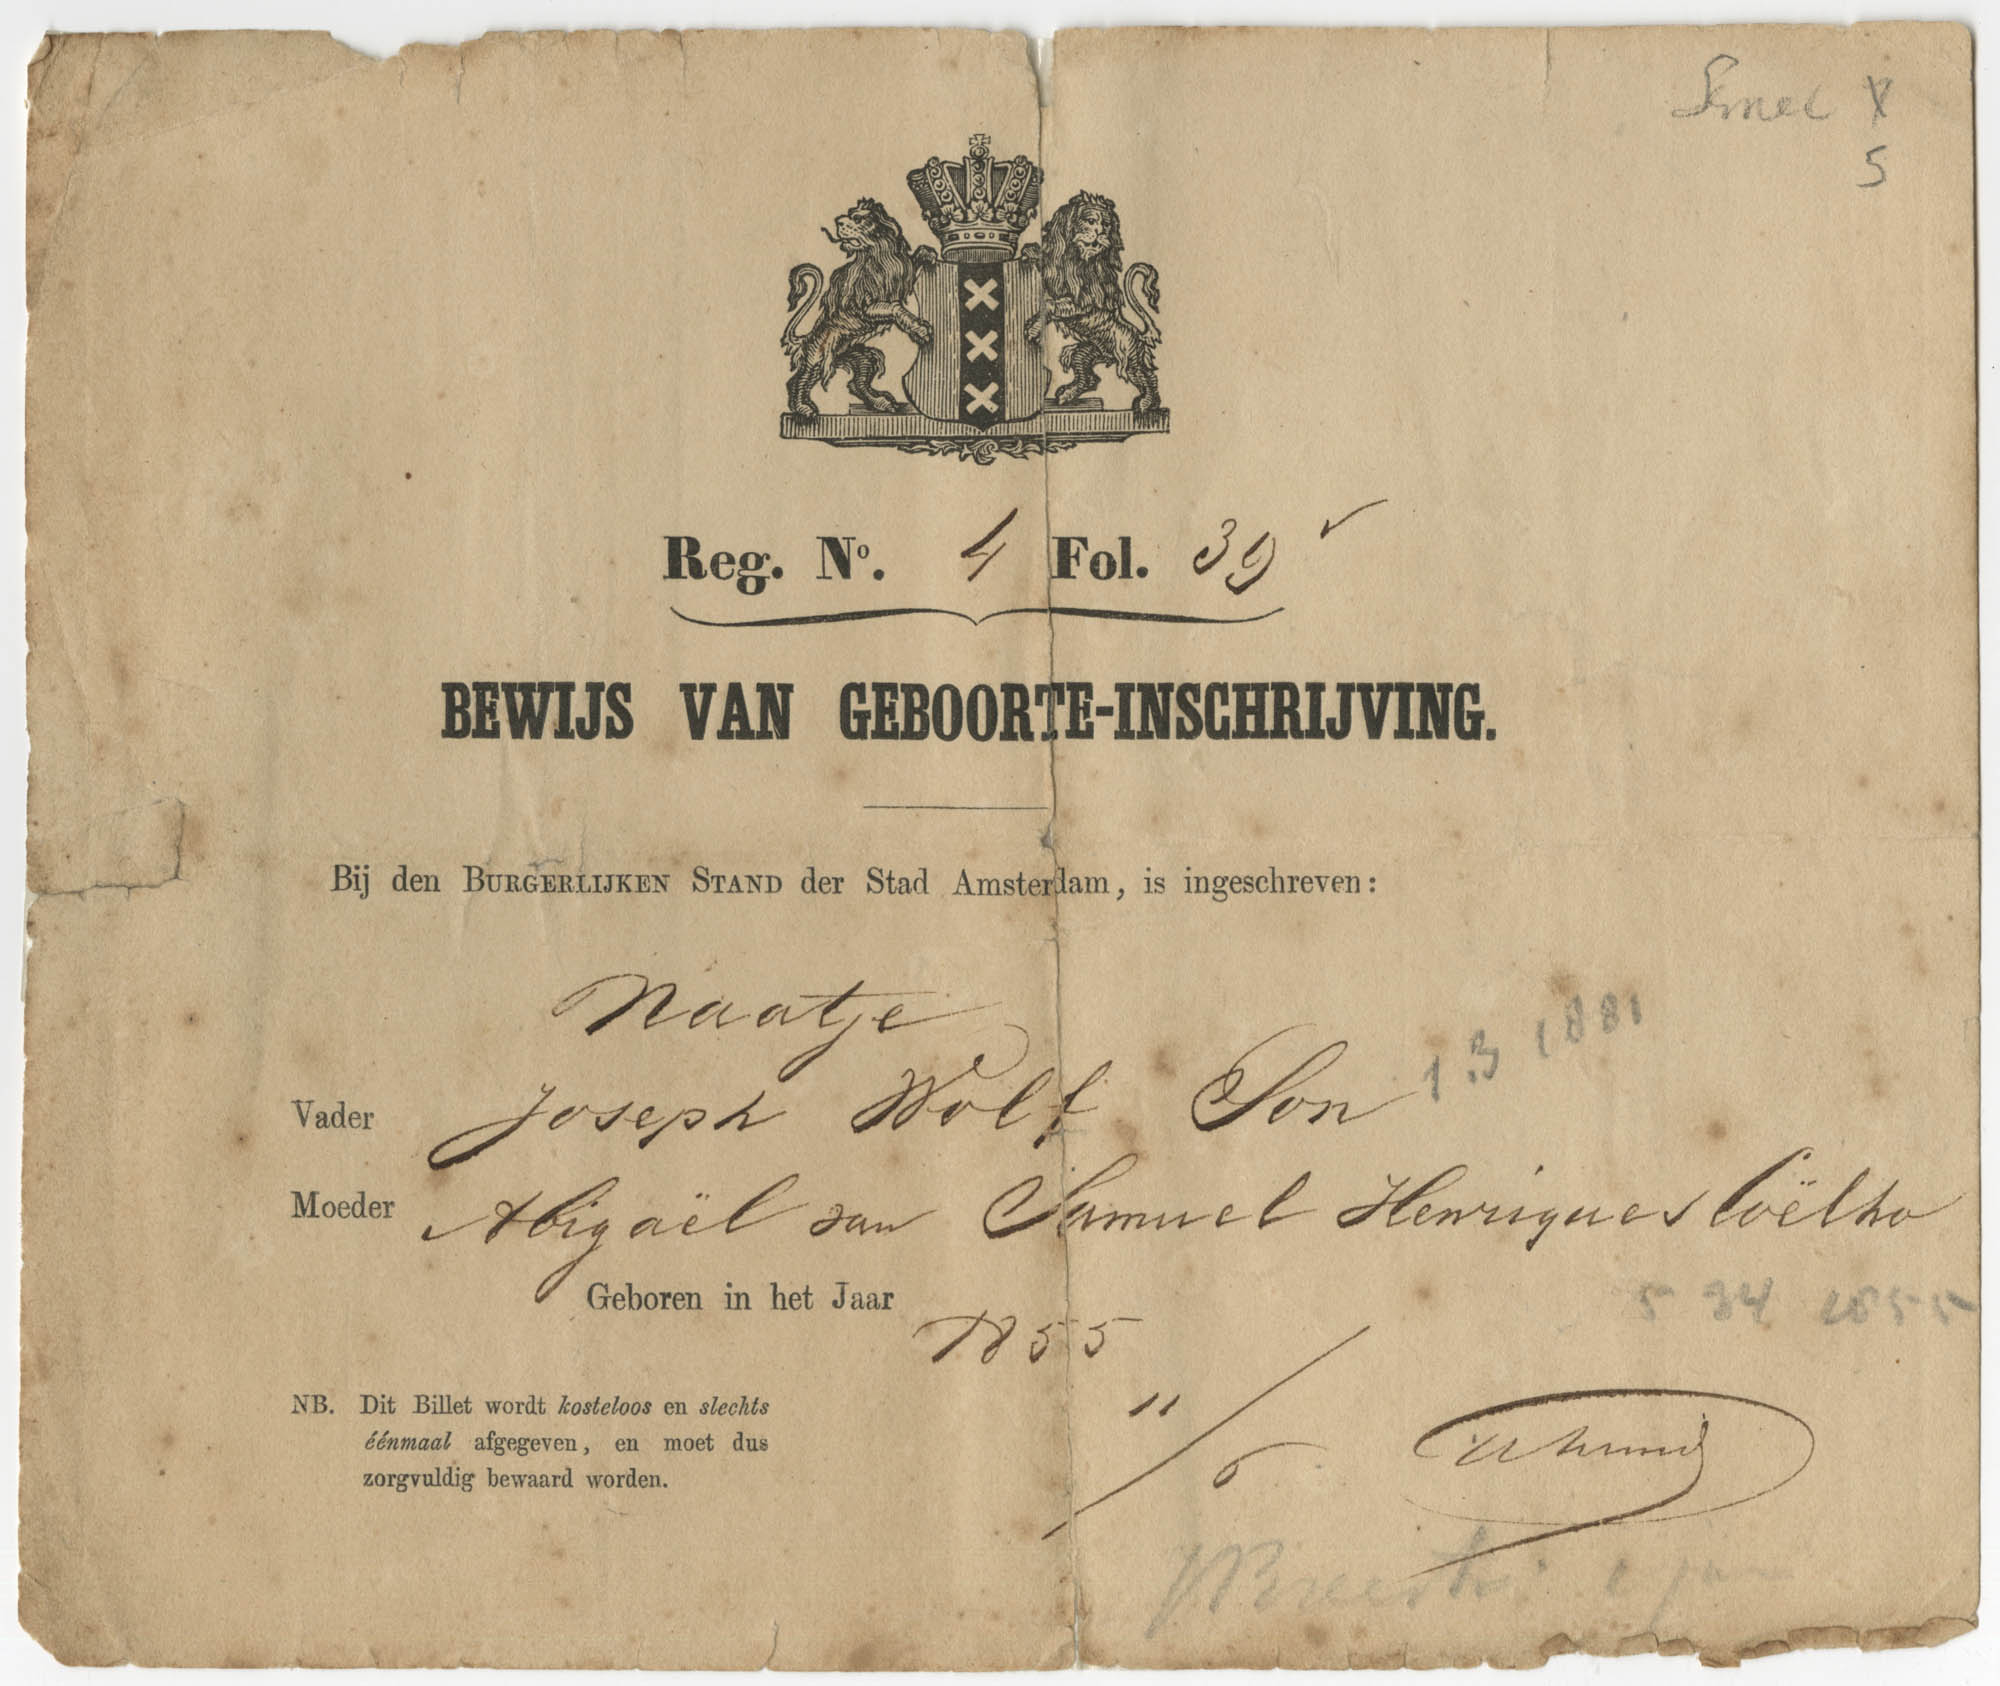 Naatje Son birth certificate, 1855